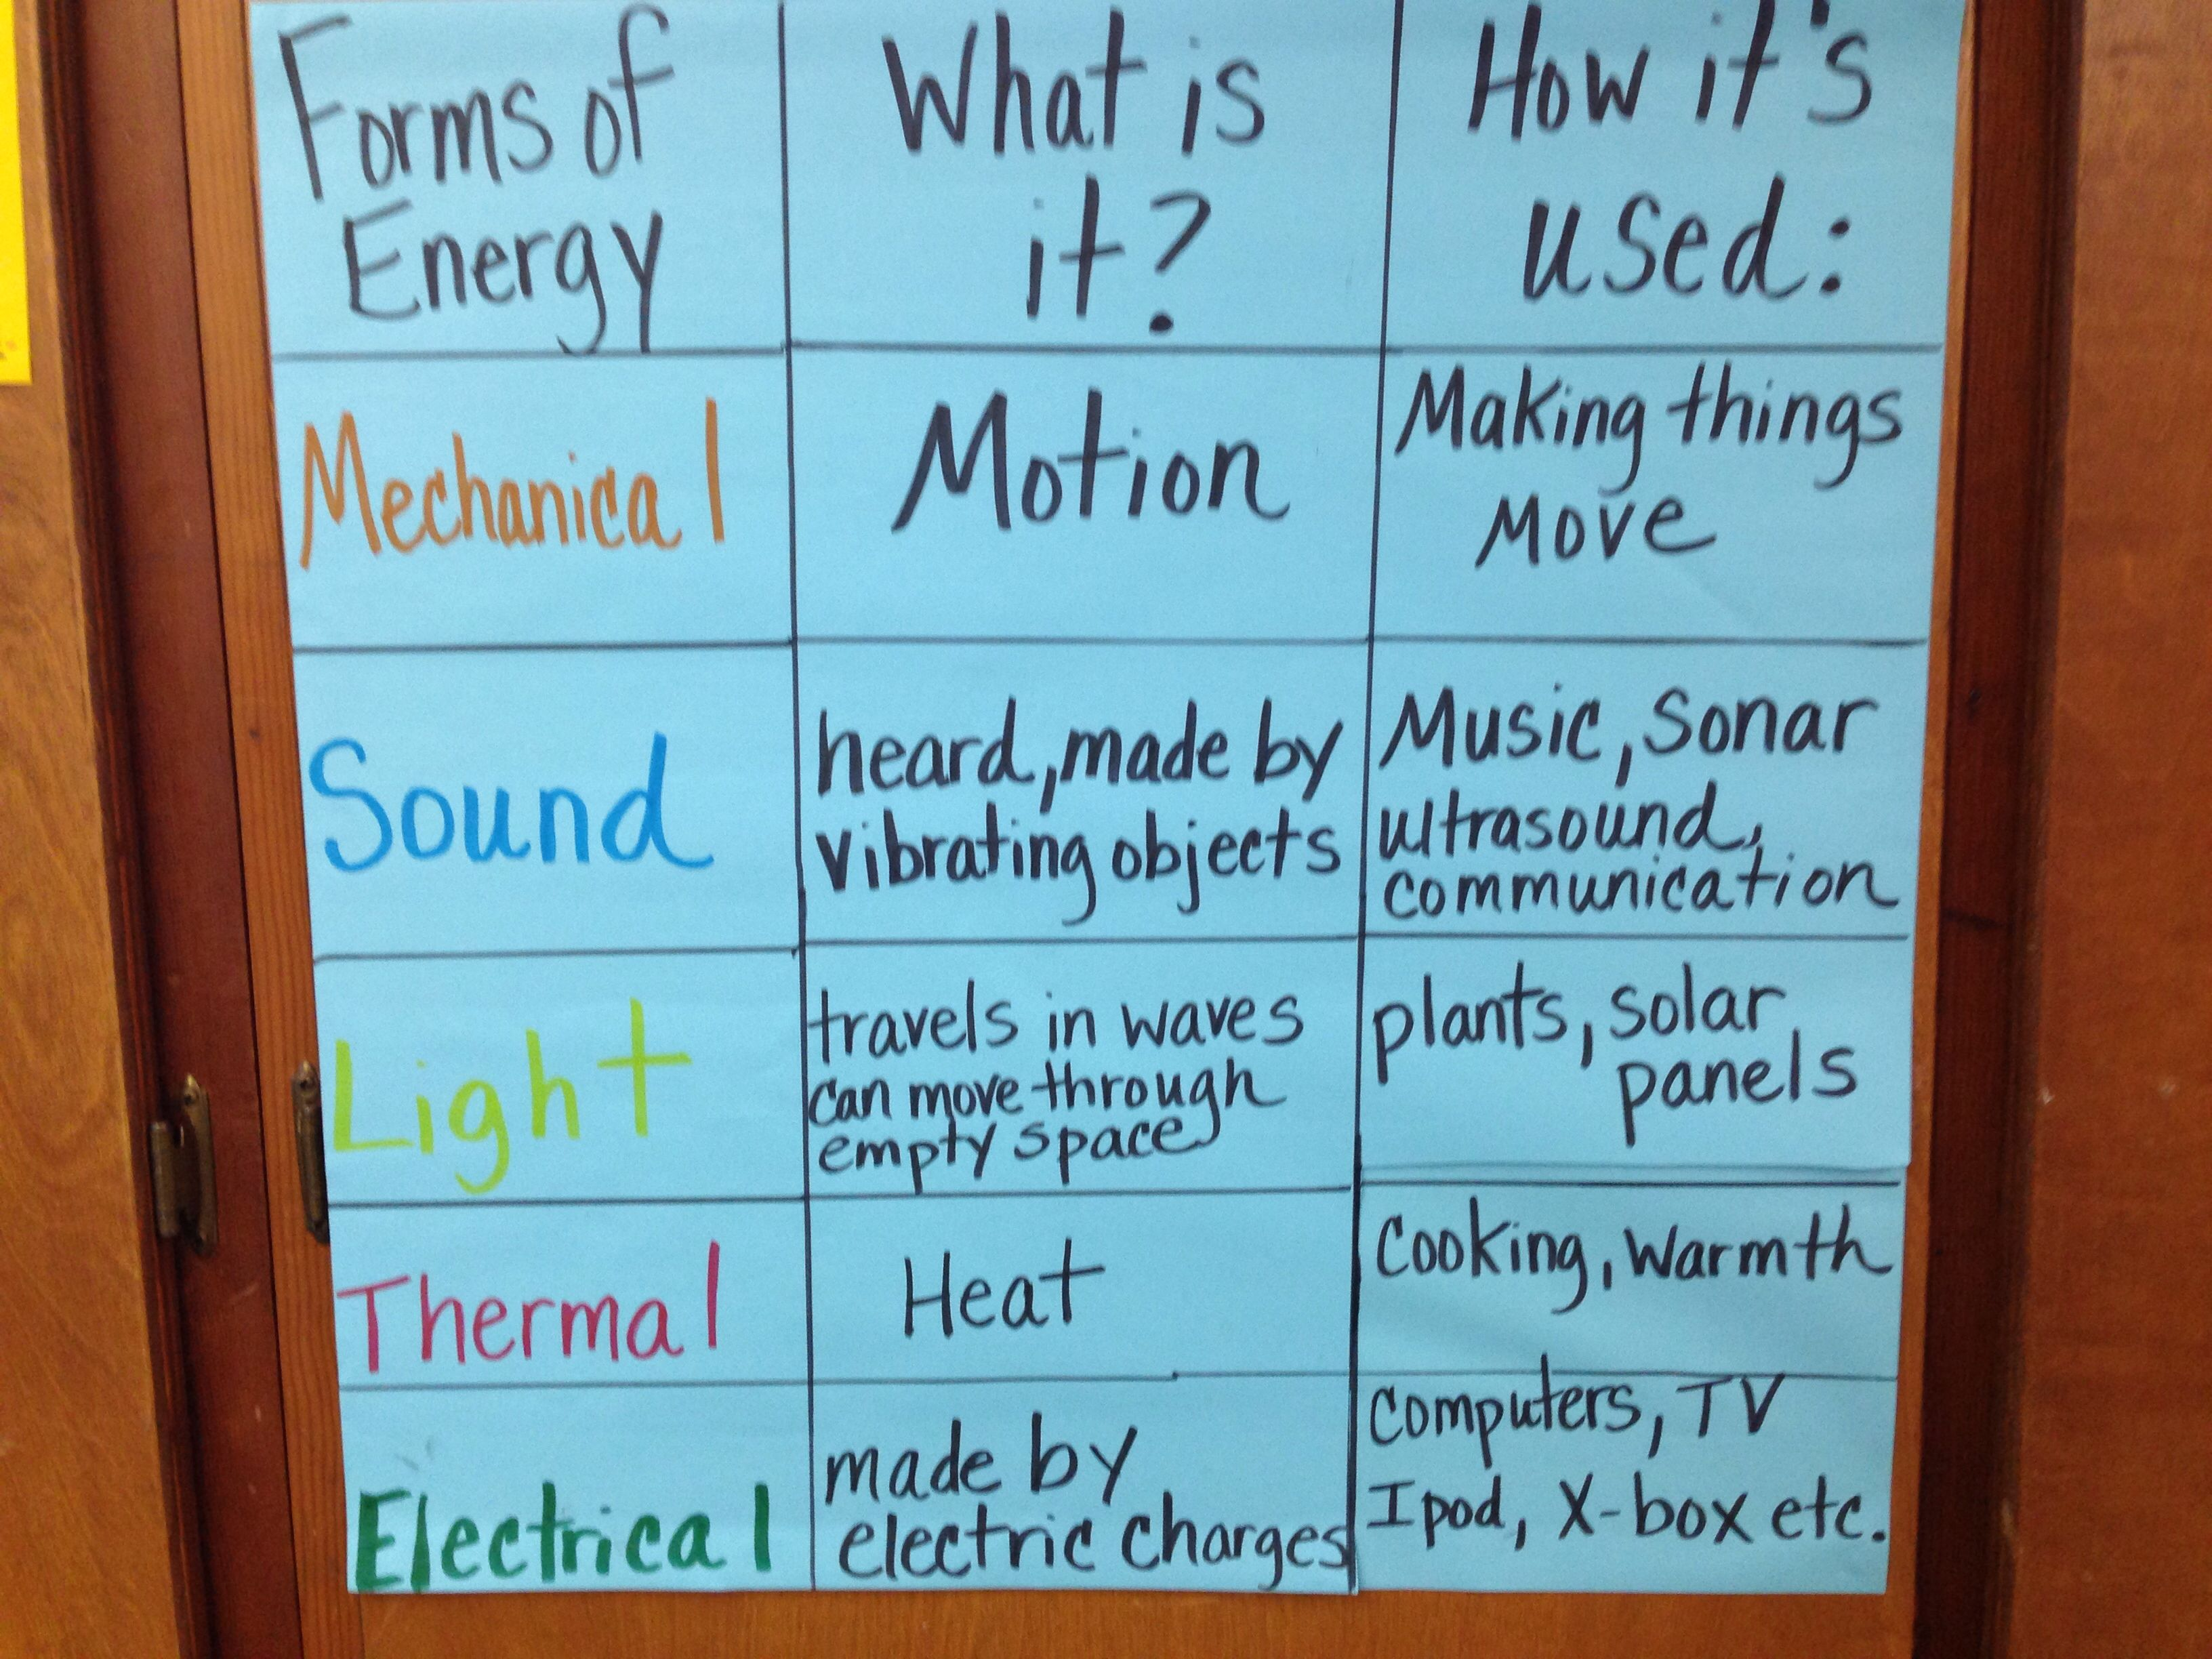 Forms of energy anchor chart fifth grade science pinterest forms of energy anchor chart robcynllc Images